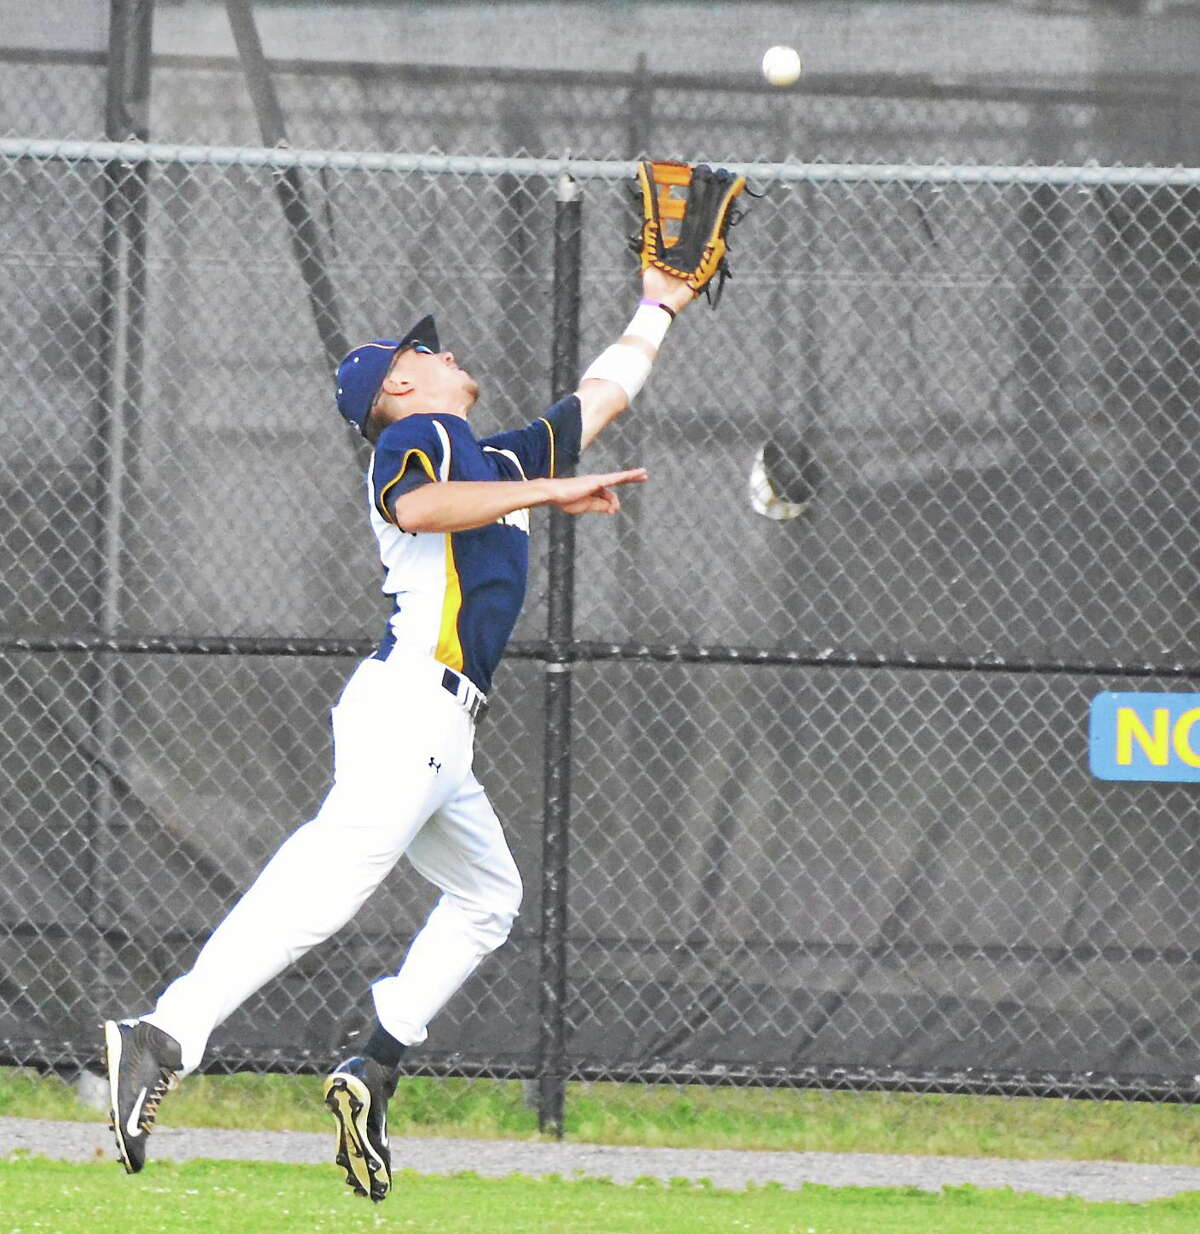 Torrington Titans' center fielder Chris Scura reaches out to try and catch a deep fly ball, but the ball would drop in over his head.